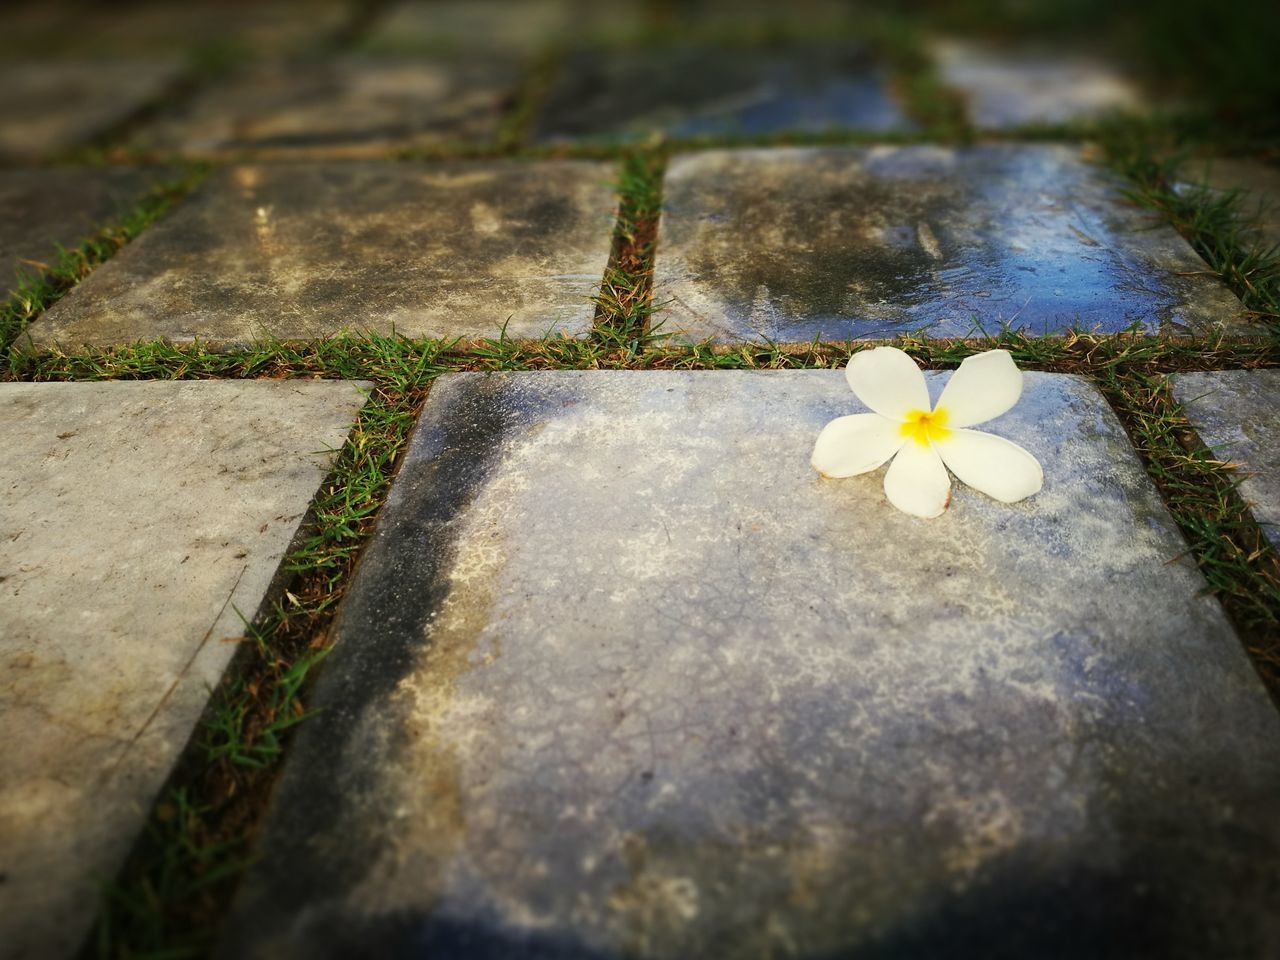 no people, day, outdoors, nature, growth, flower, close-up, beauty in nature, frangipani